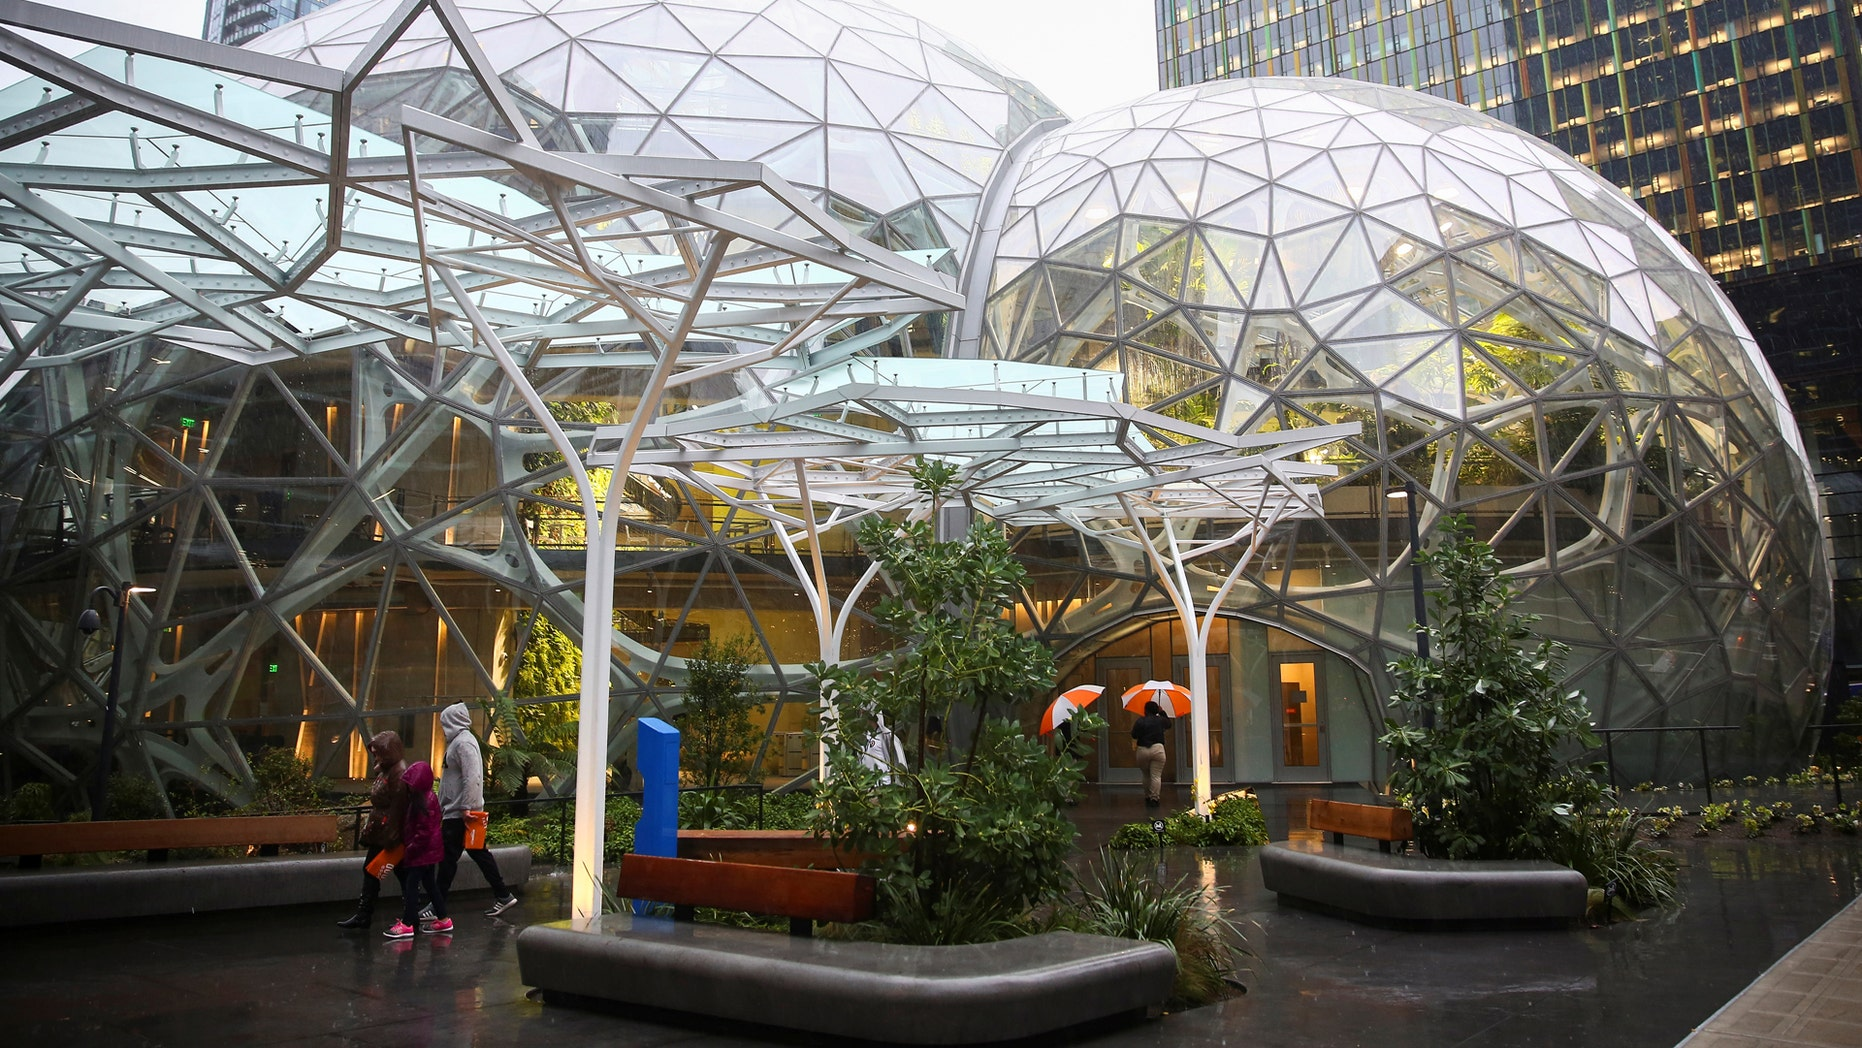 People walk by the main entrance of the Amazon Spheres at Amazon's Seattle headquarters in Seattle, Washington, U.S., January 29, 2018. REUTERS/Lindsey Wasson